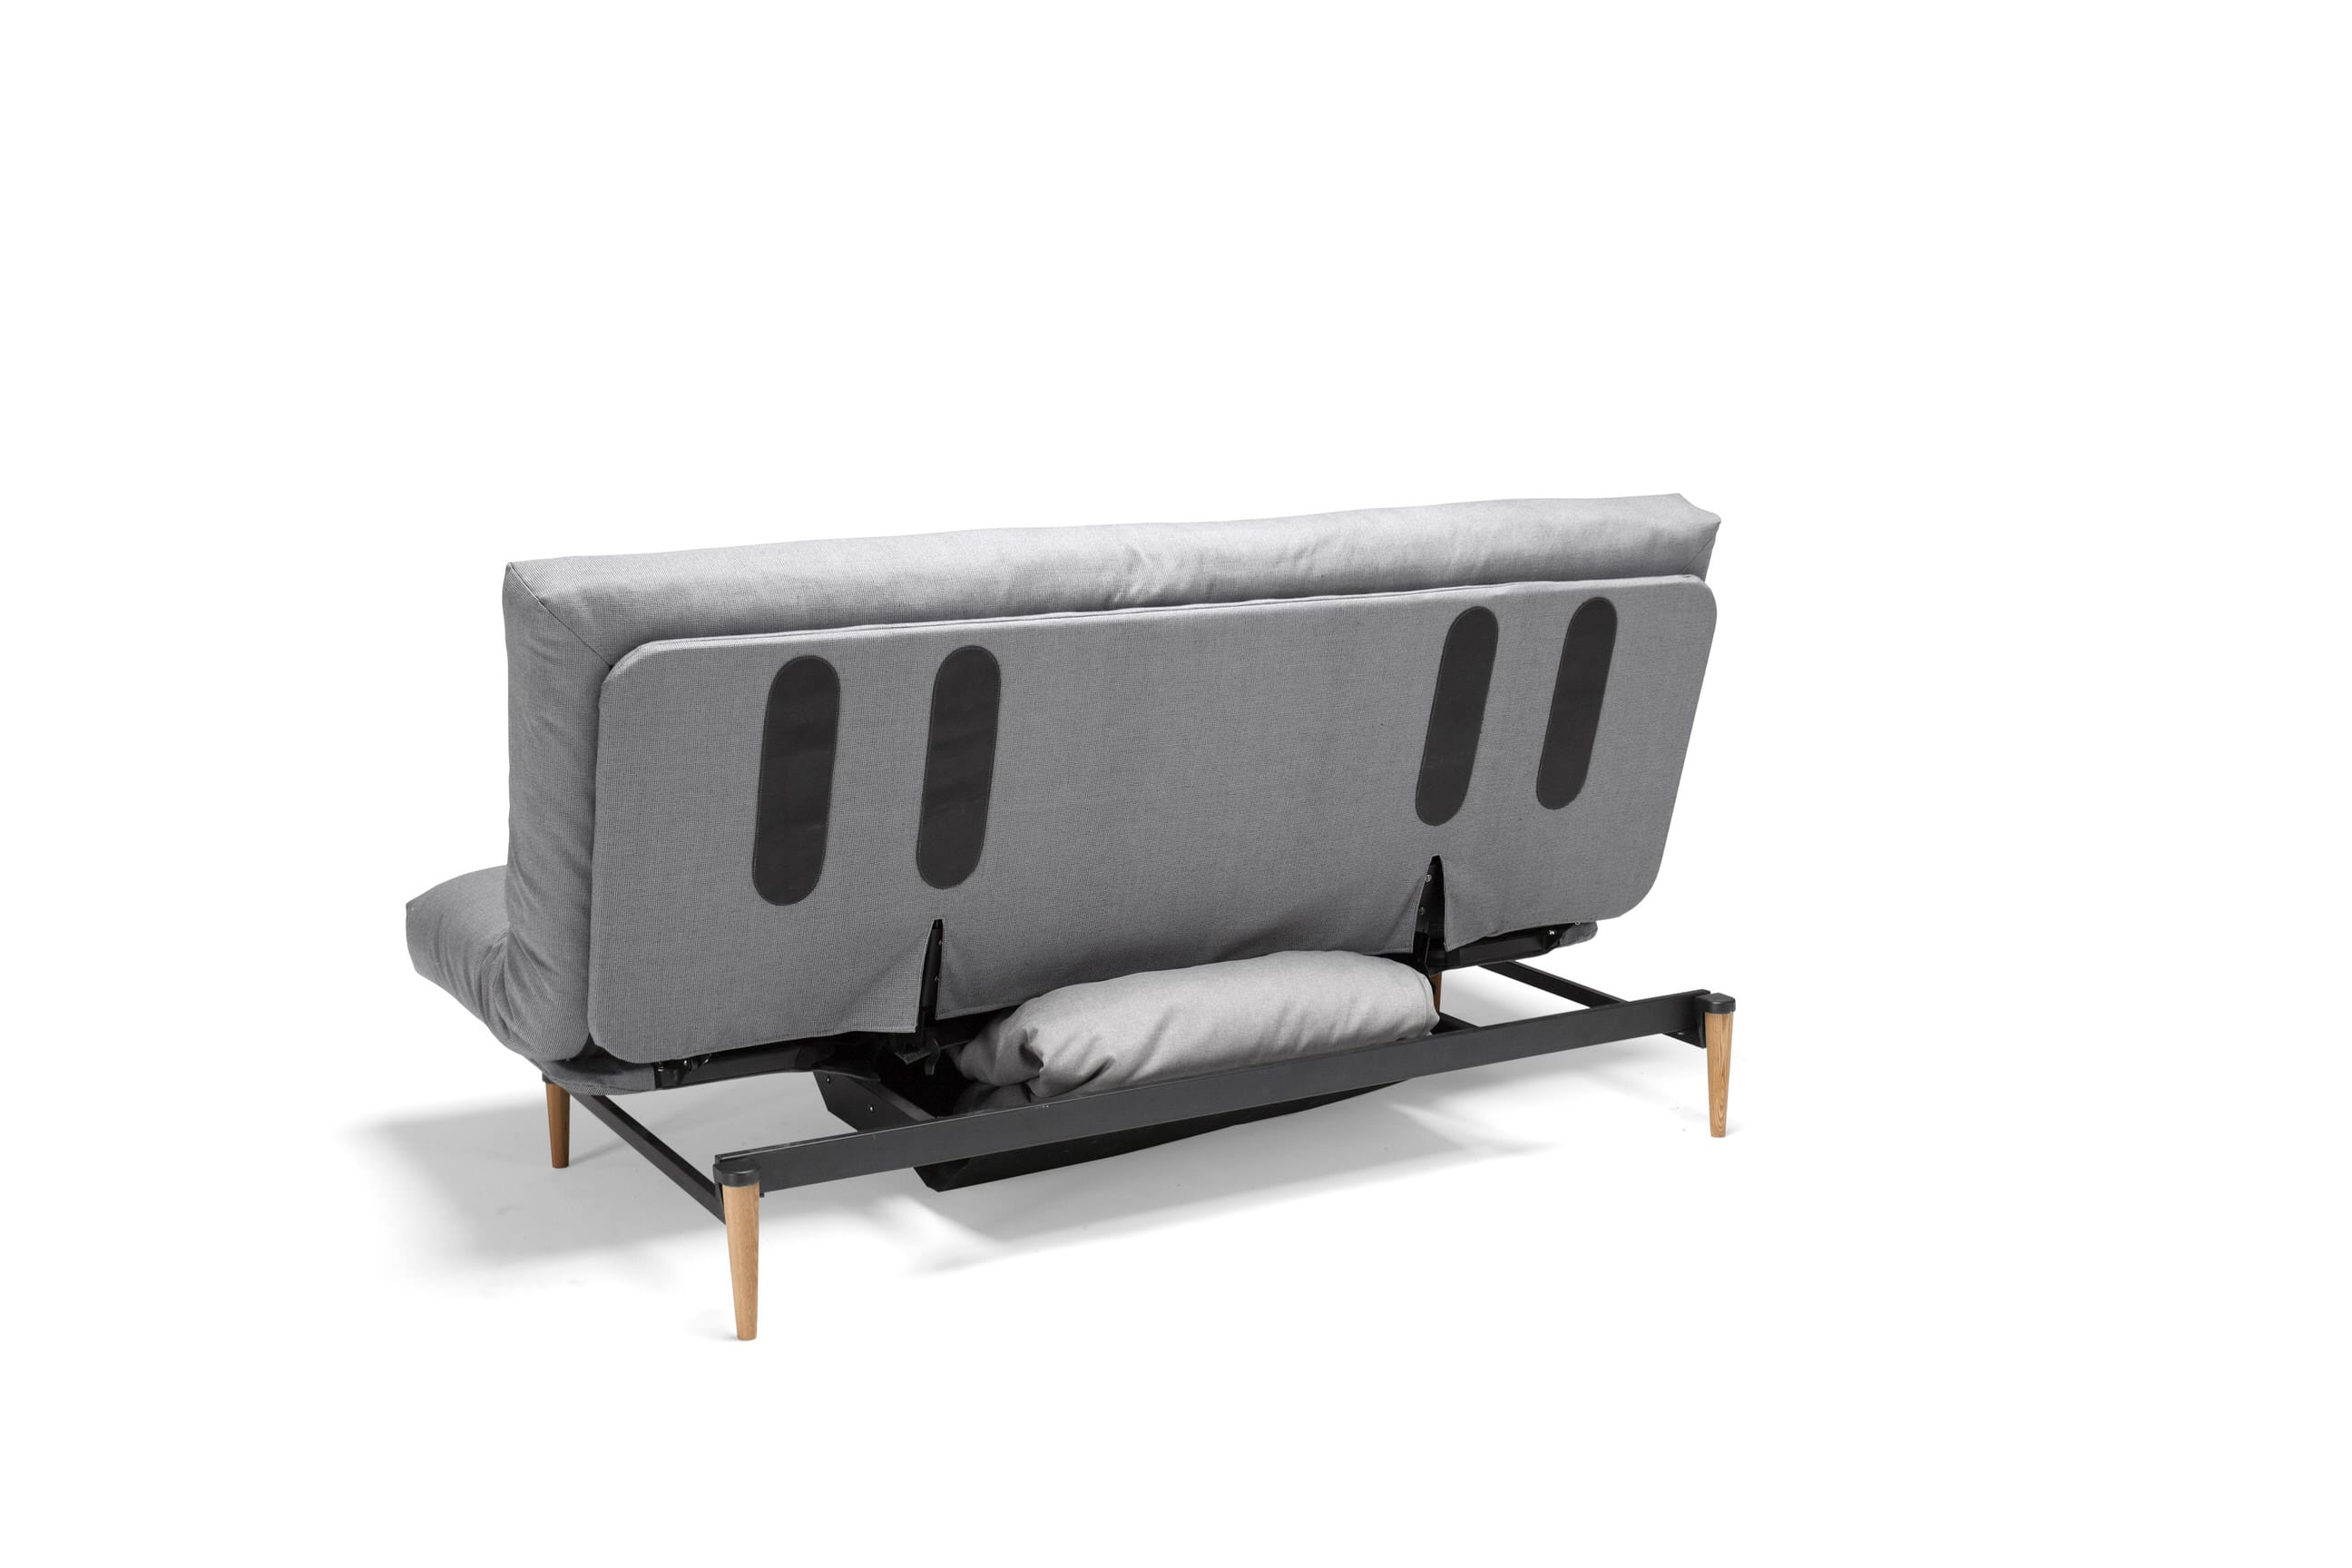 Colpus Futon Sofa Bed Full Xl By Innovation